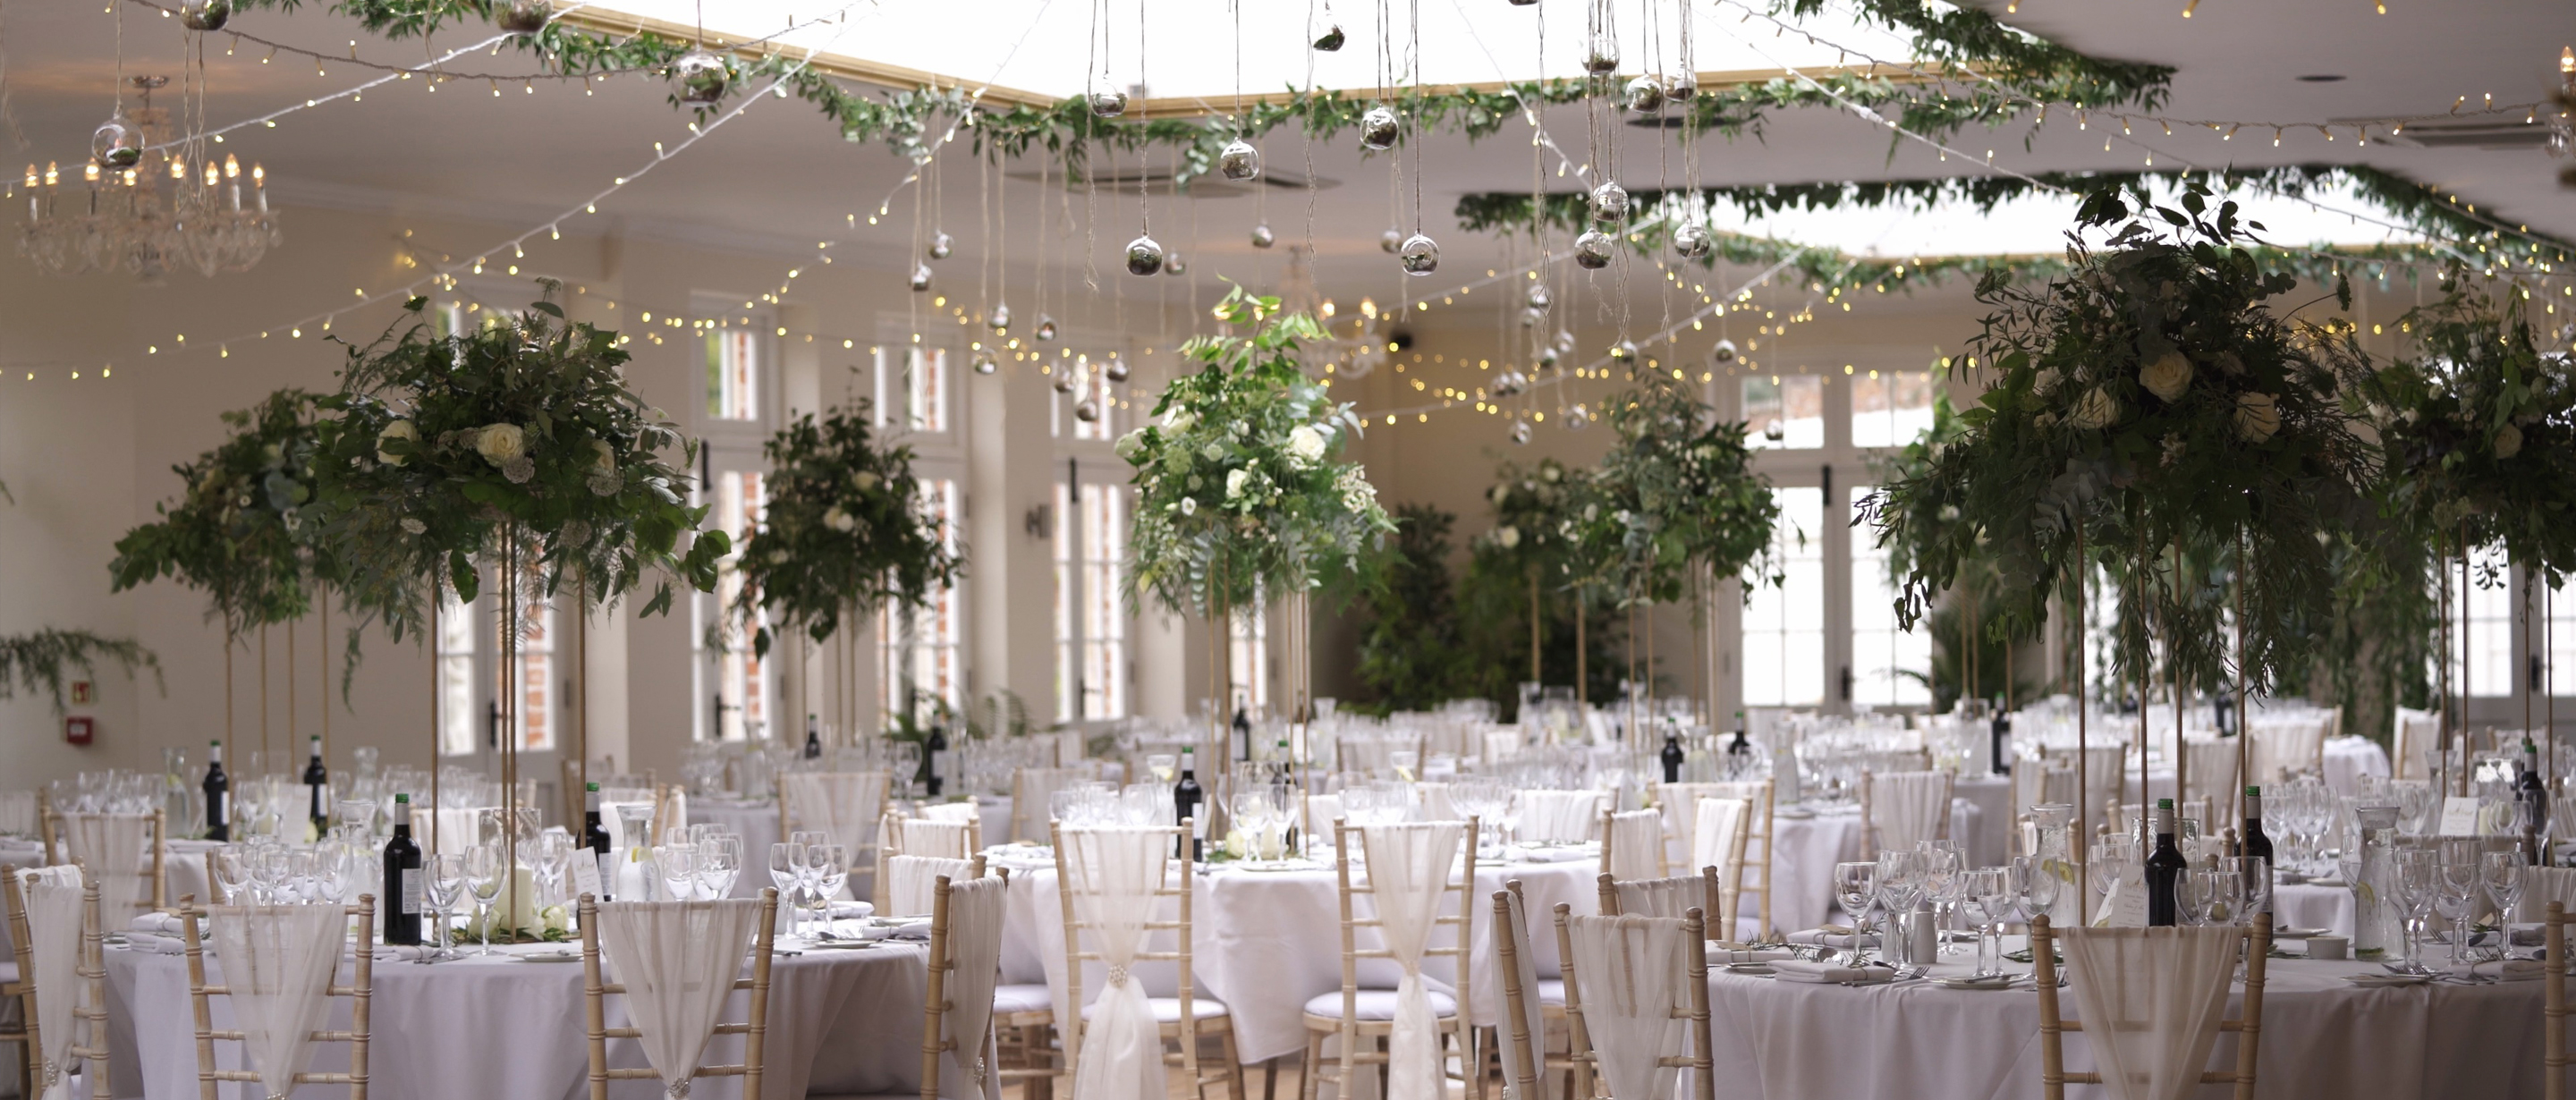 orchardleigh estate wedding decor inspiration bath